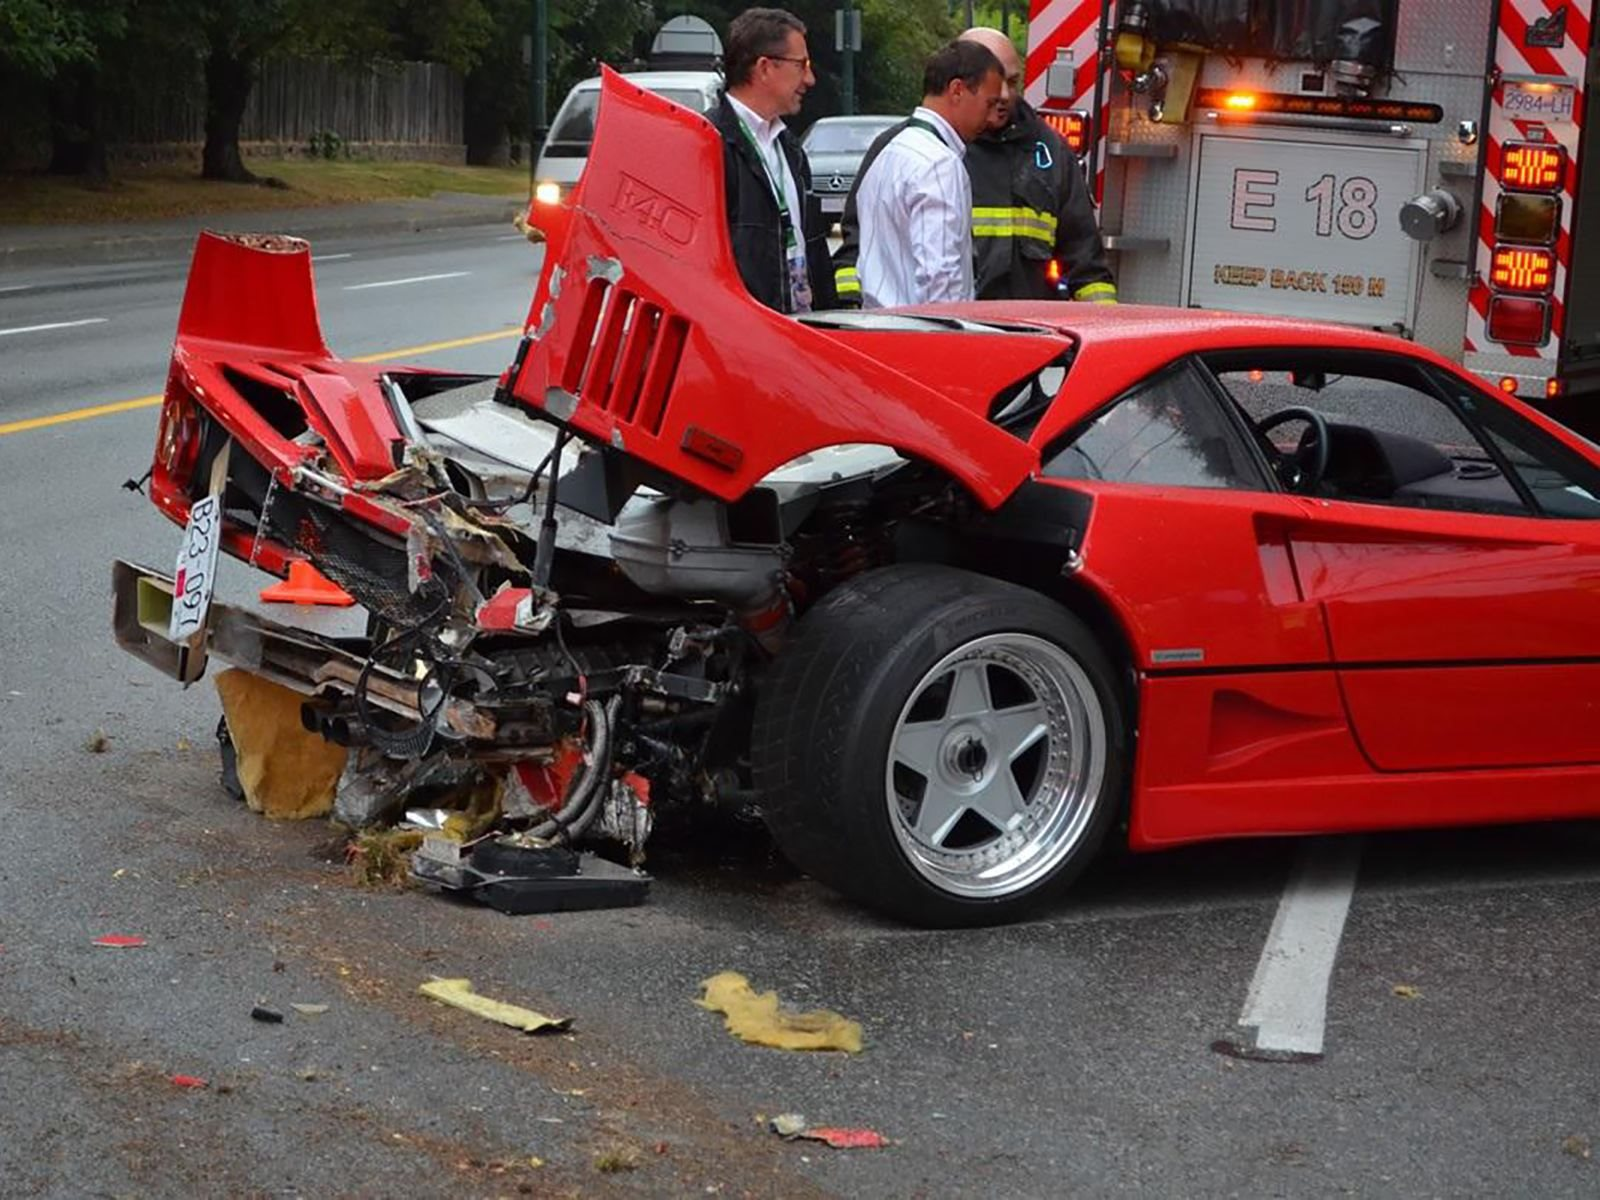 Ferrari F40 Owner Sues Insurer For Not Covering 1 Million Repair